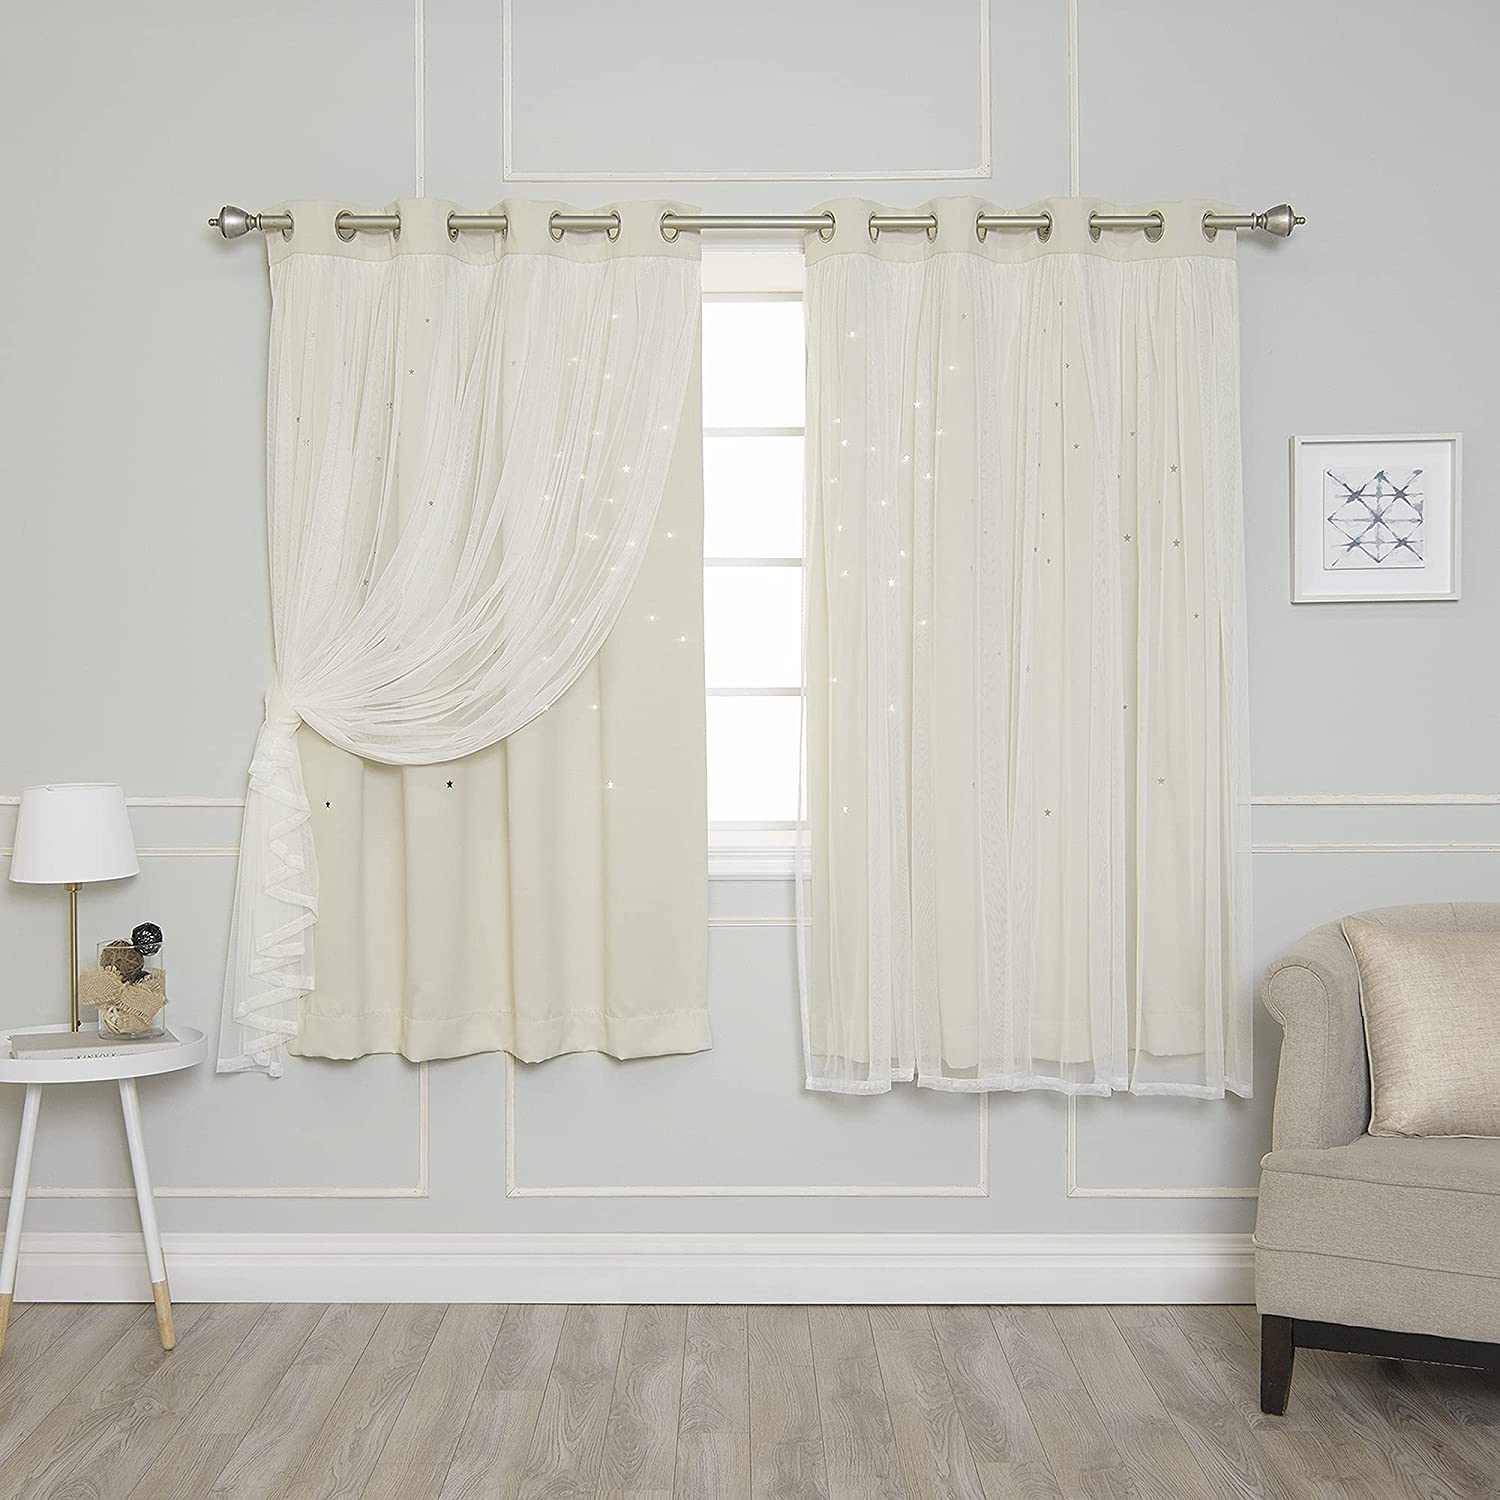 Best Home Fashion Tulle Overlay Star Cut Out Blackout Curtains - Stainless Steel Grommet Top - Biscuit - 52